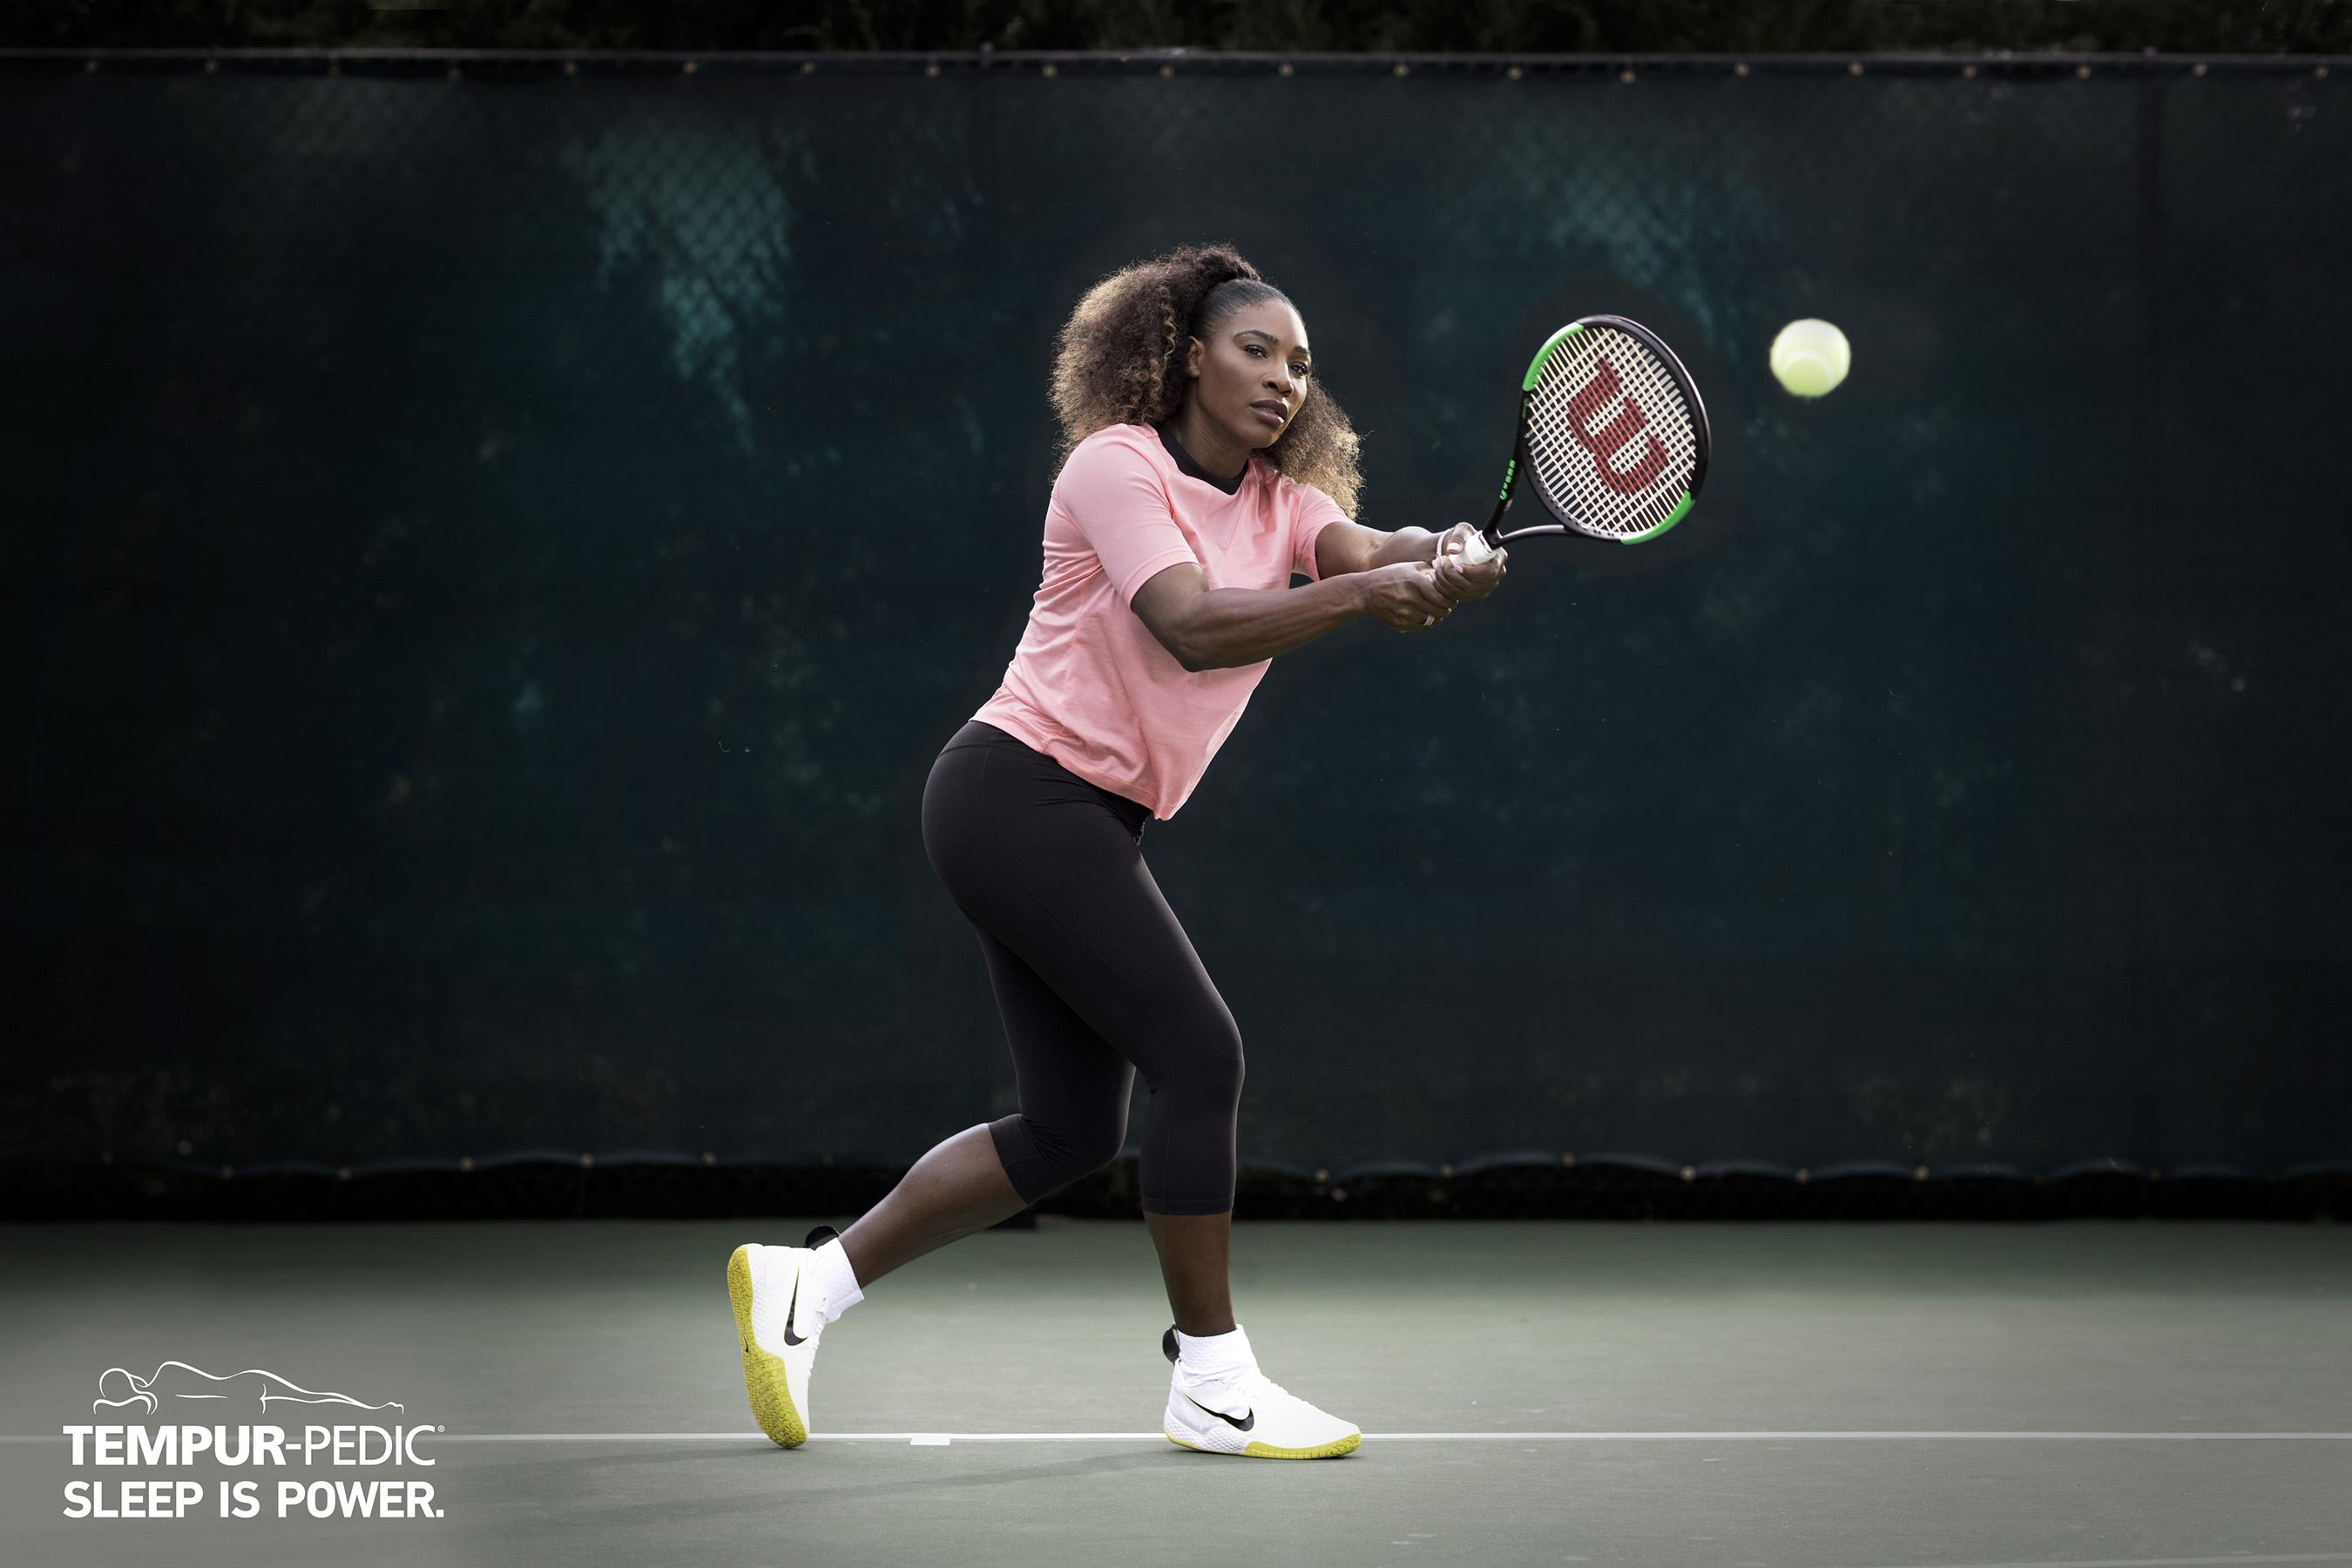 Serena Williams, tennis icon and Tempur-Pedic owner for 10 years, teams up with Tempur-Pedic to amplify the brand's new